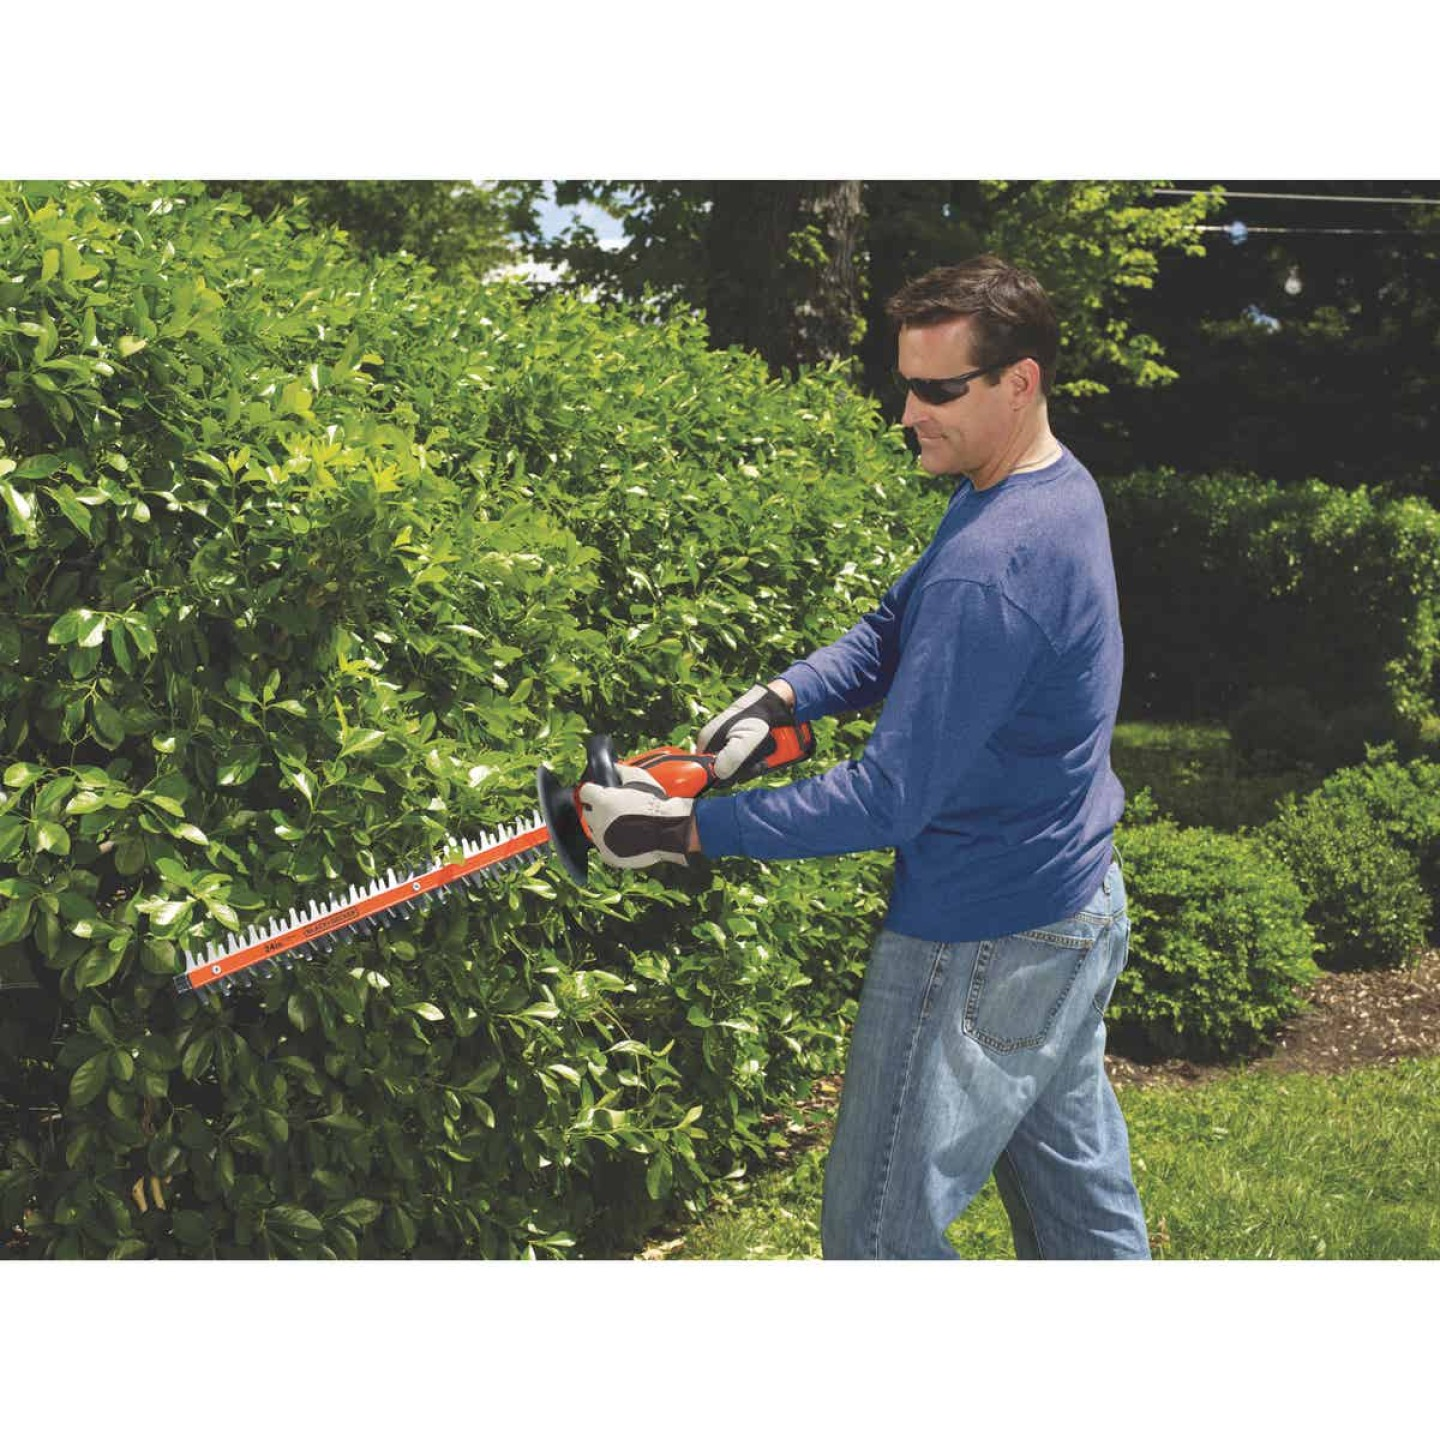 Black & Decker 24 In. 40V Lithium Ion Cordless Hedge Trimmer Image 3